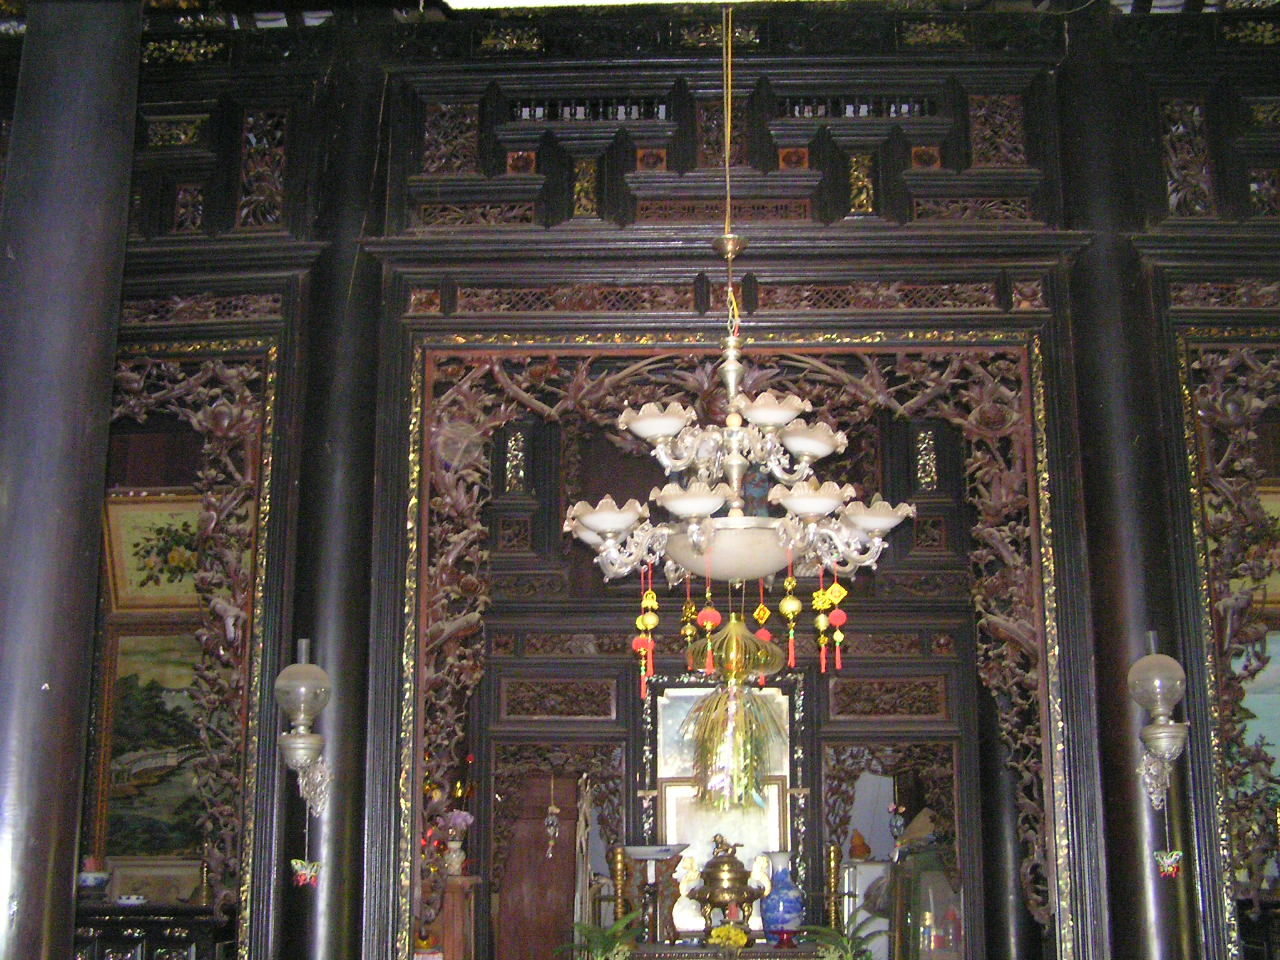 ... and inside Huynh Thuy Le Ancient House